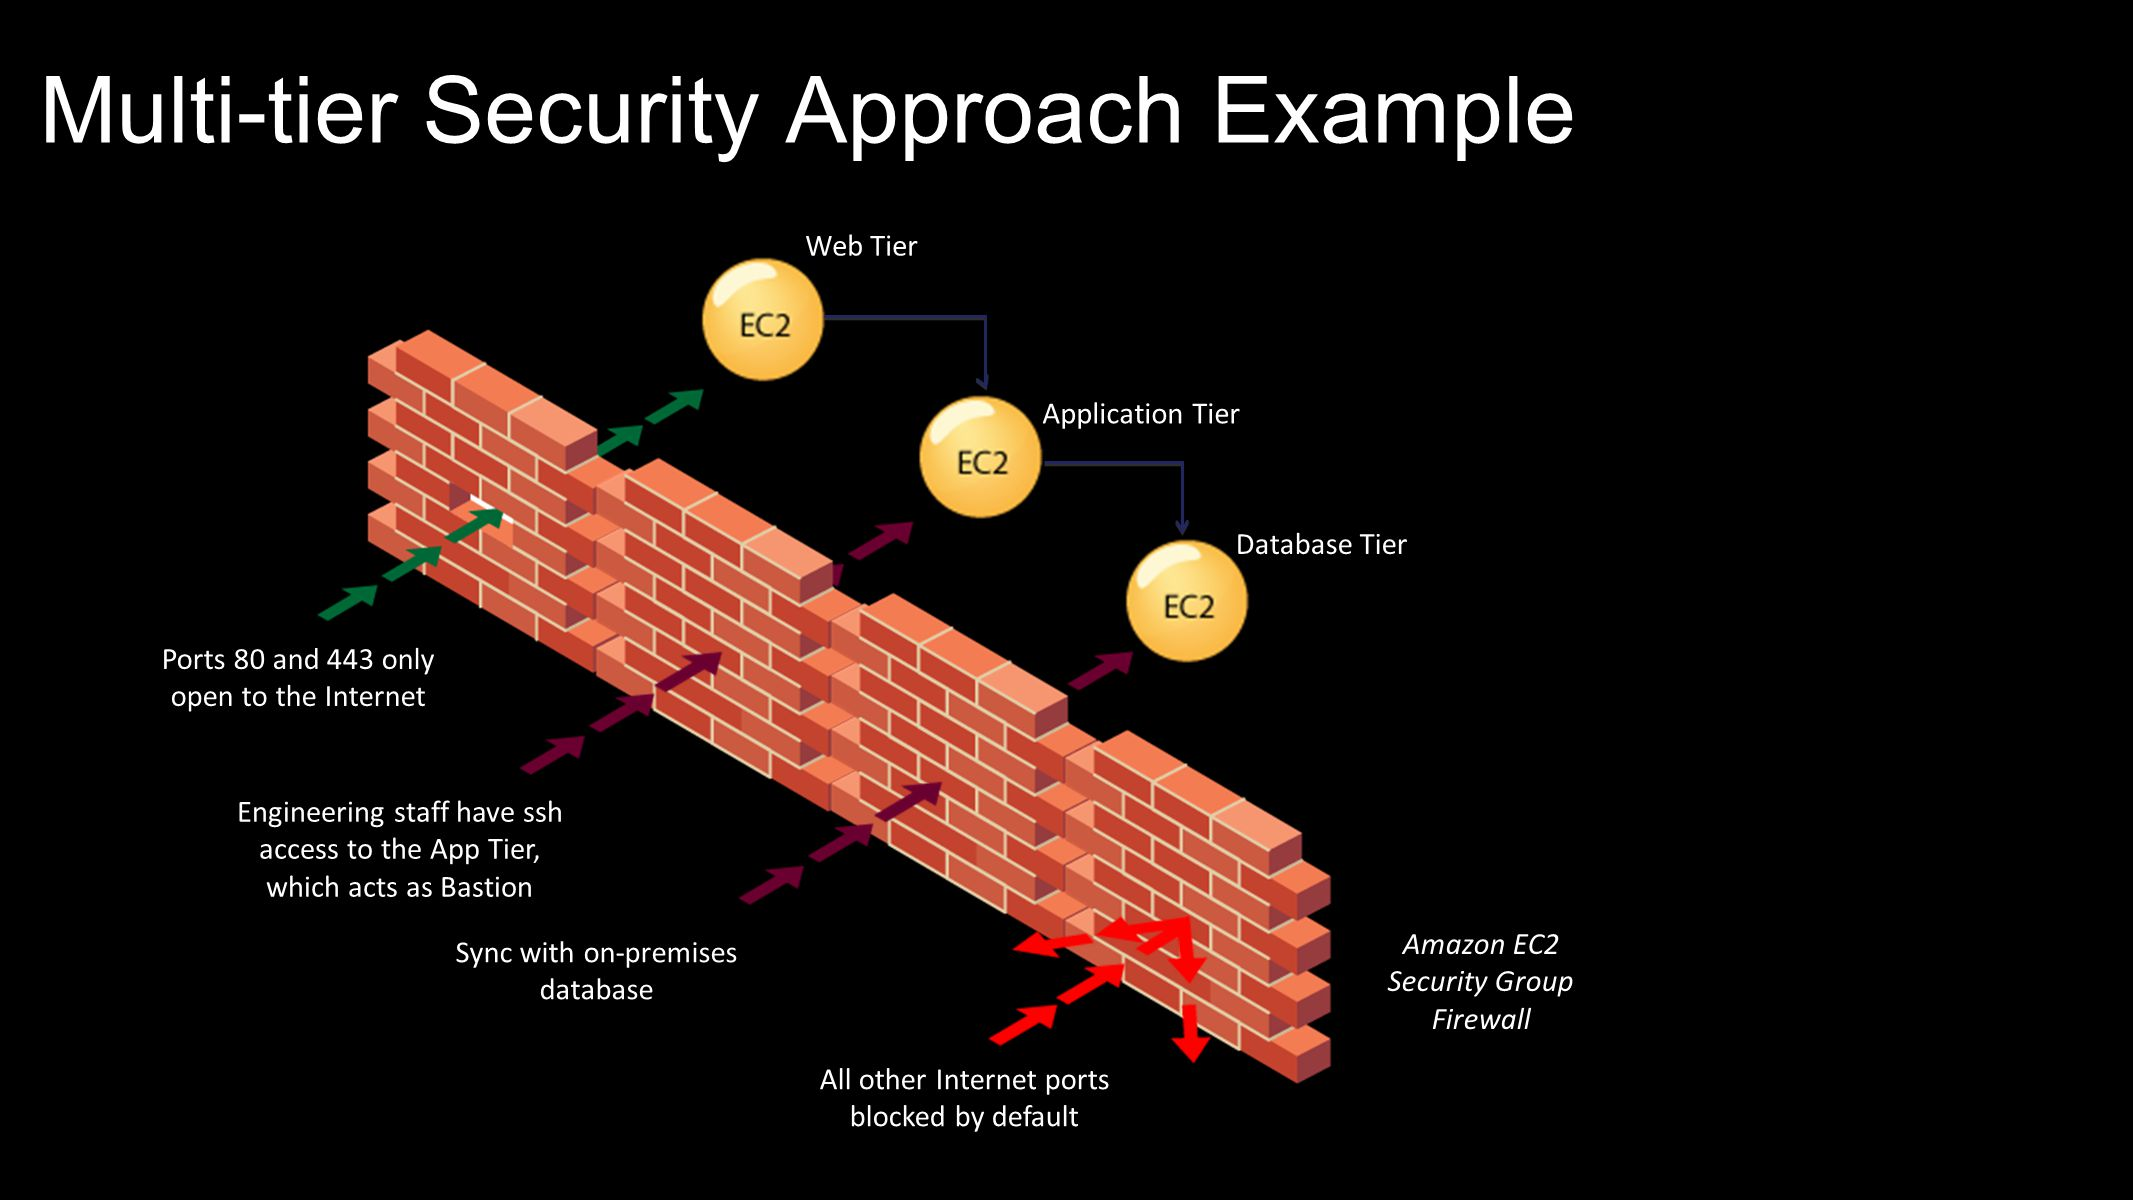 Multi-tier Security Approach Example